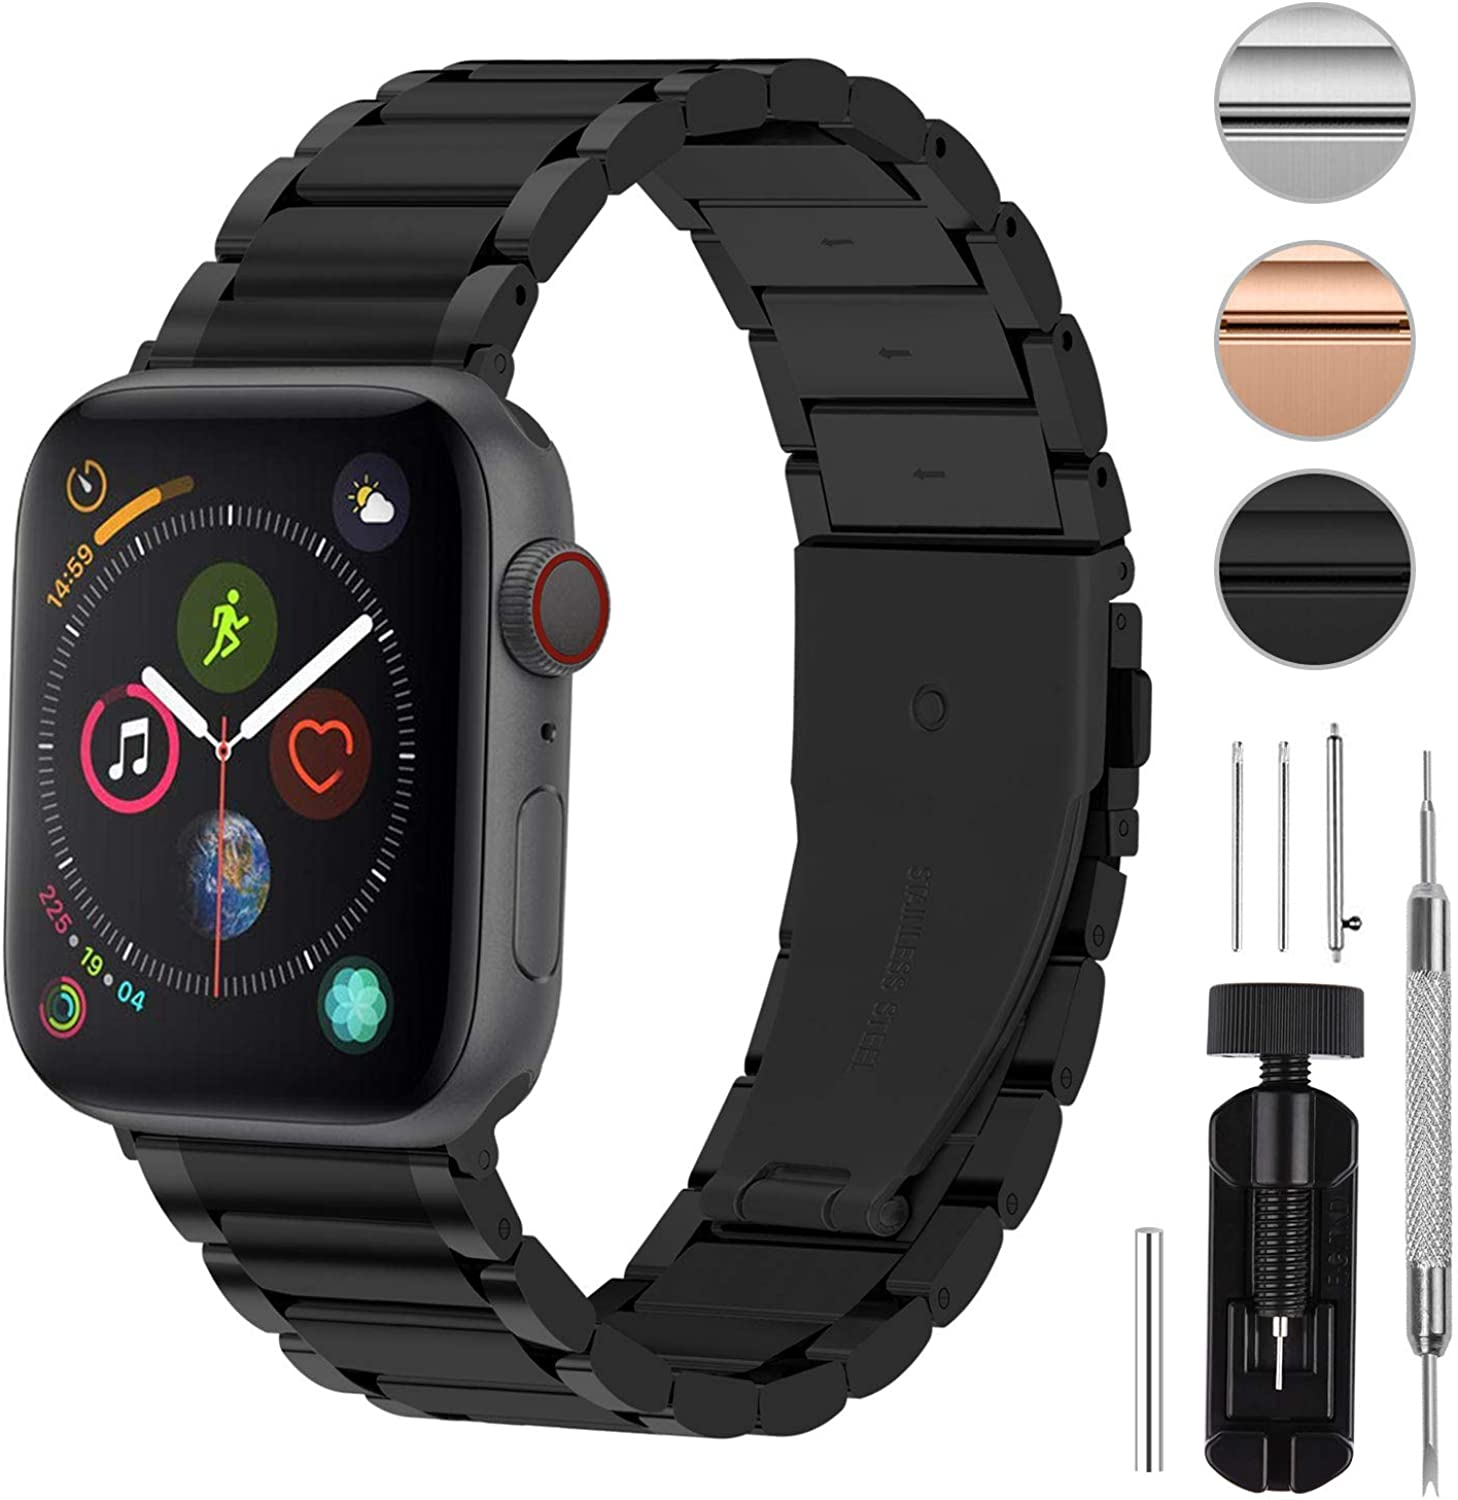 Fullmosa Compatible for Apple Watch Band iWatch SE & Series 6/5/4/3/2/1, 3 Colors LUS Watch Band for Apple Watch 38mm 42mm 40mm 44mm